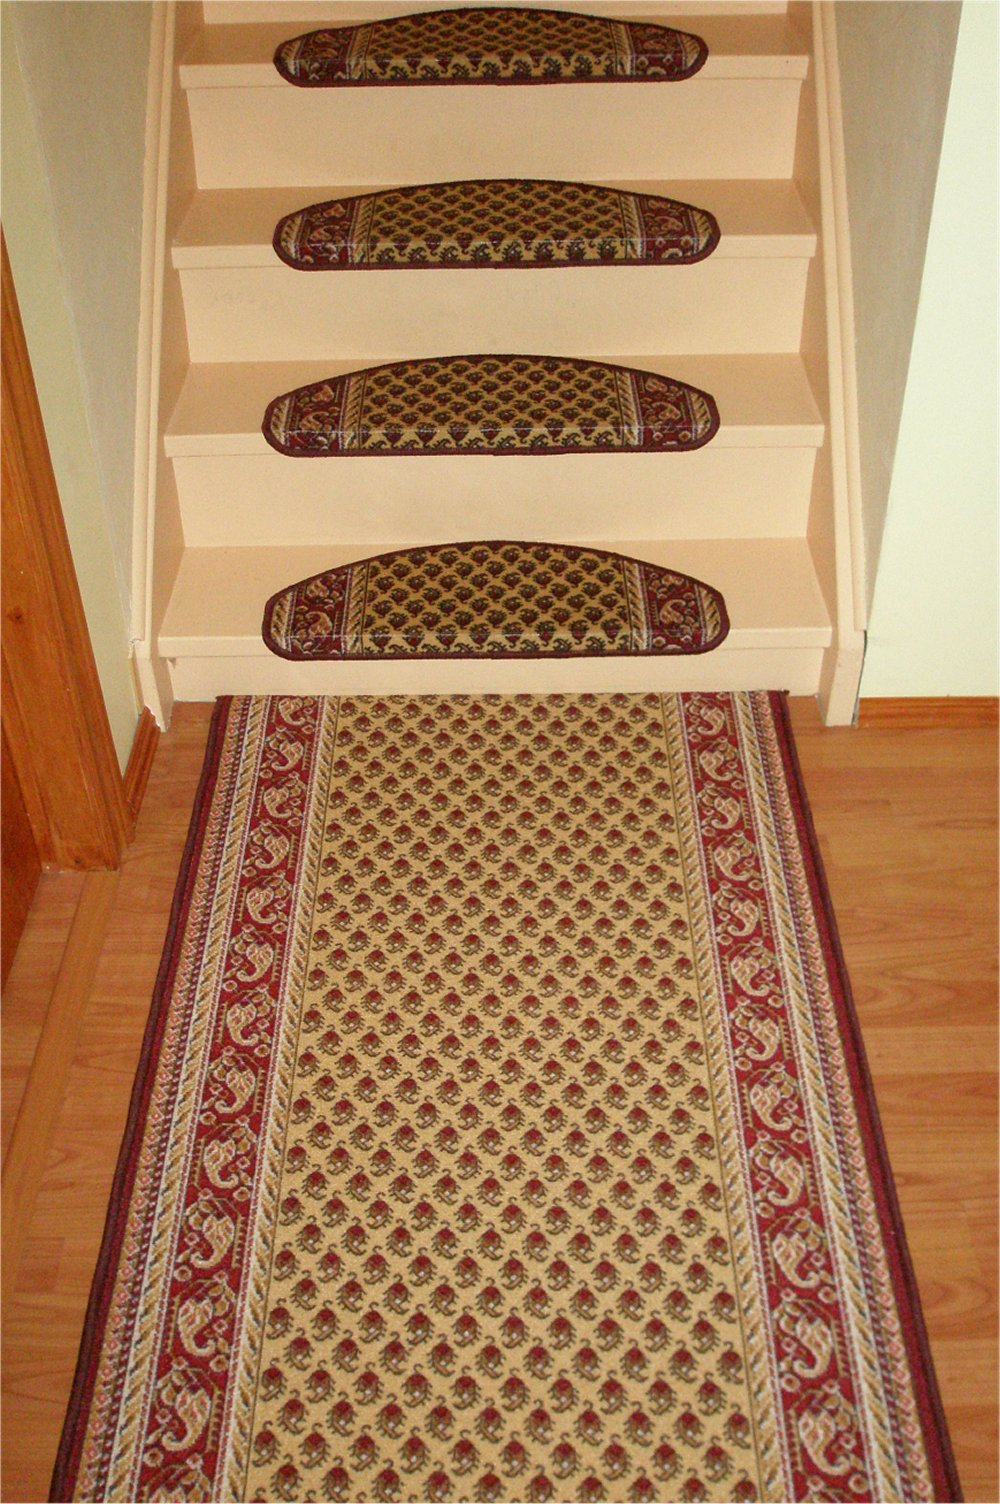 Large Selection of Stair Carpet, Stair Mats, Carpet Stair Treads, Stair Rugs